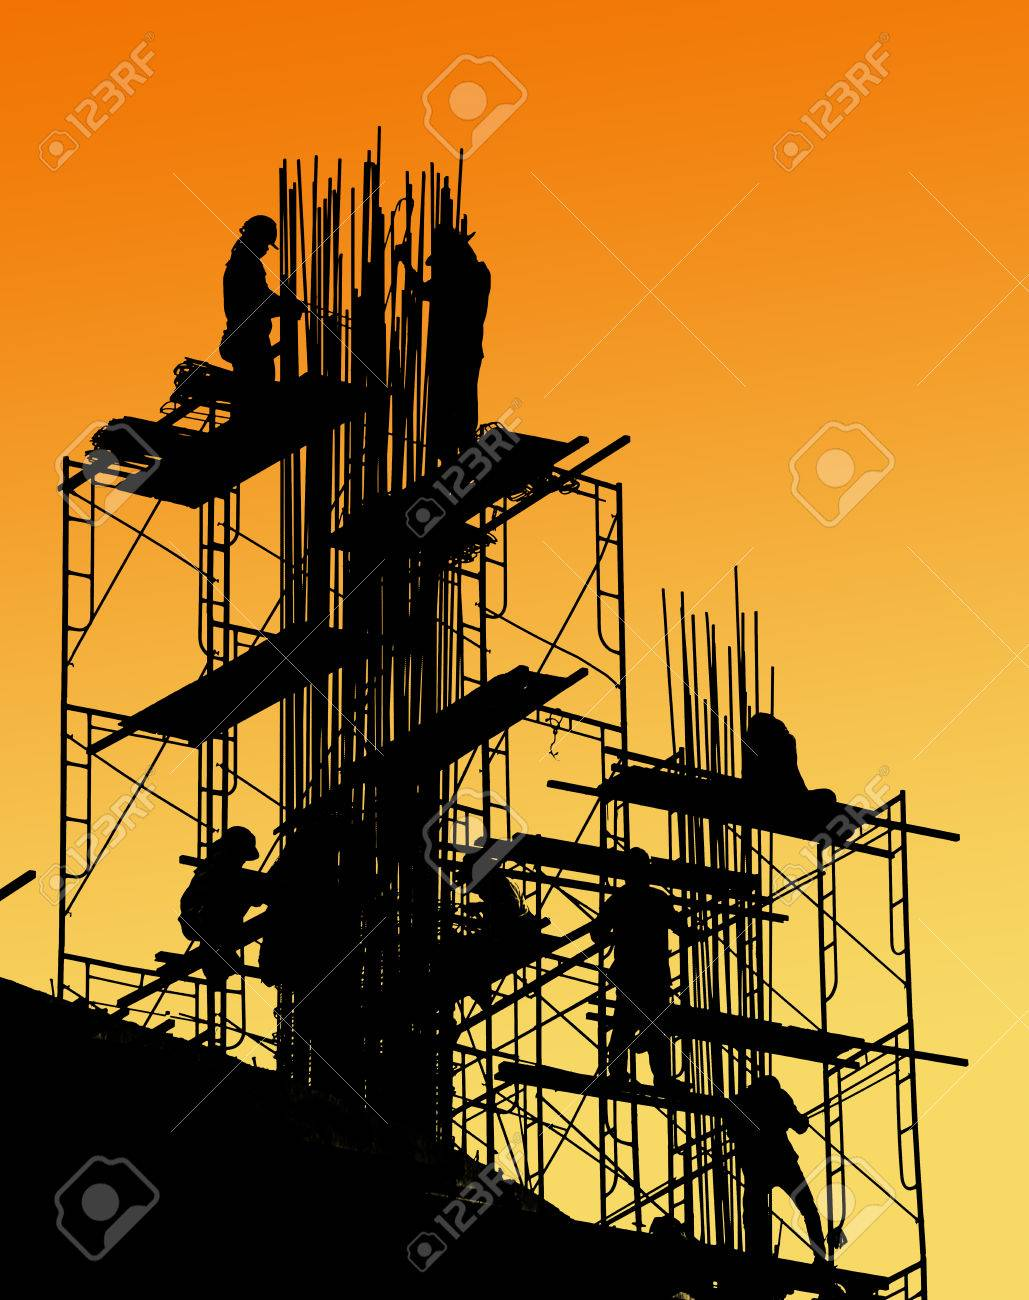 silhouette of construction worker on scaffold Stock Photo - 34039859